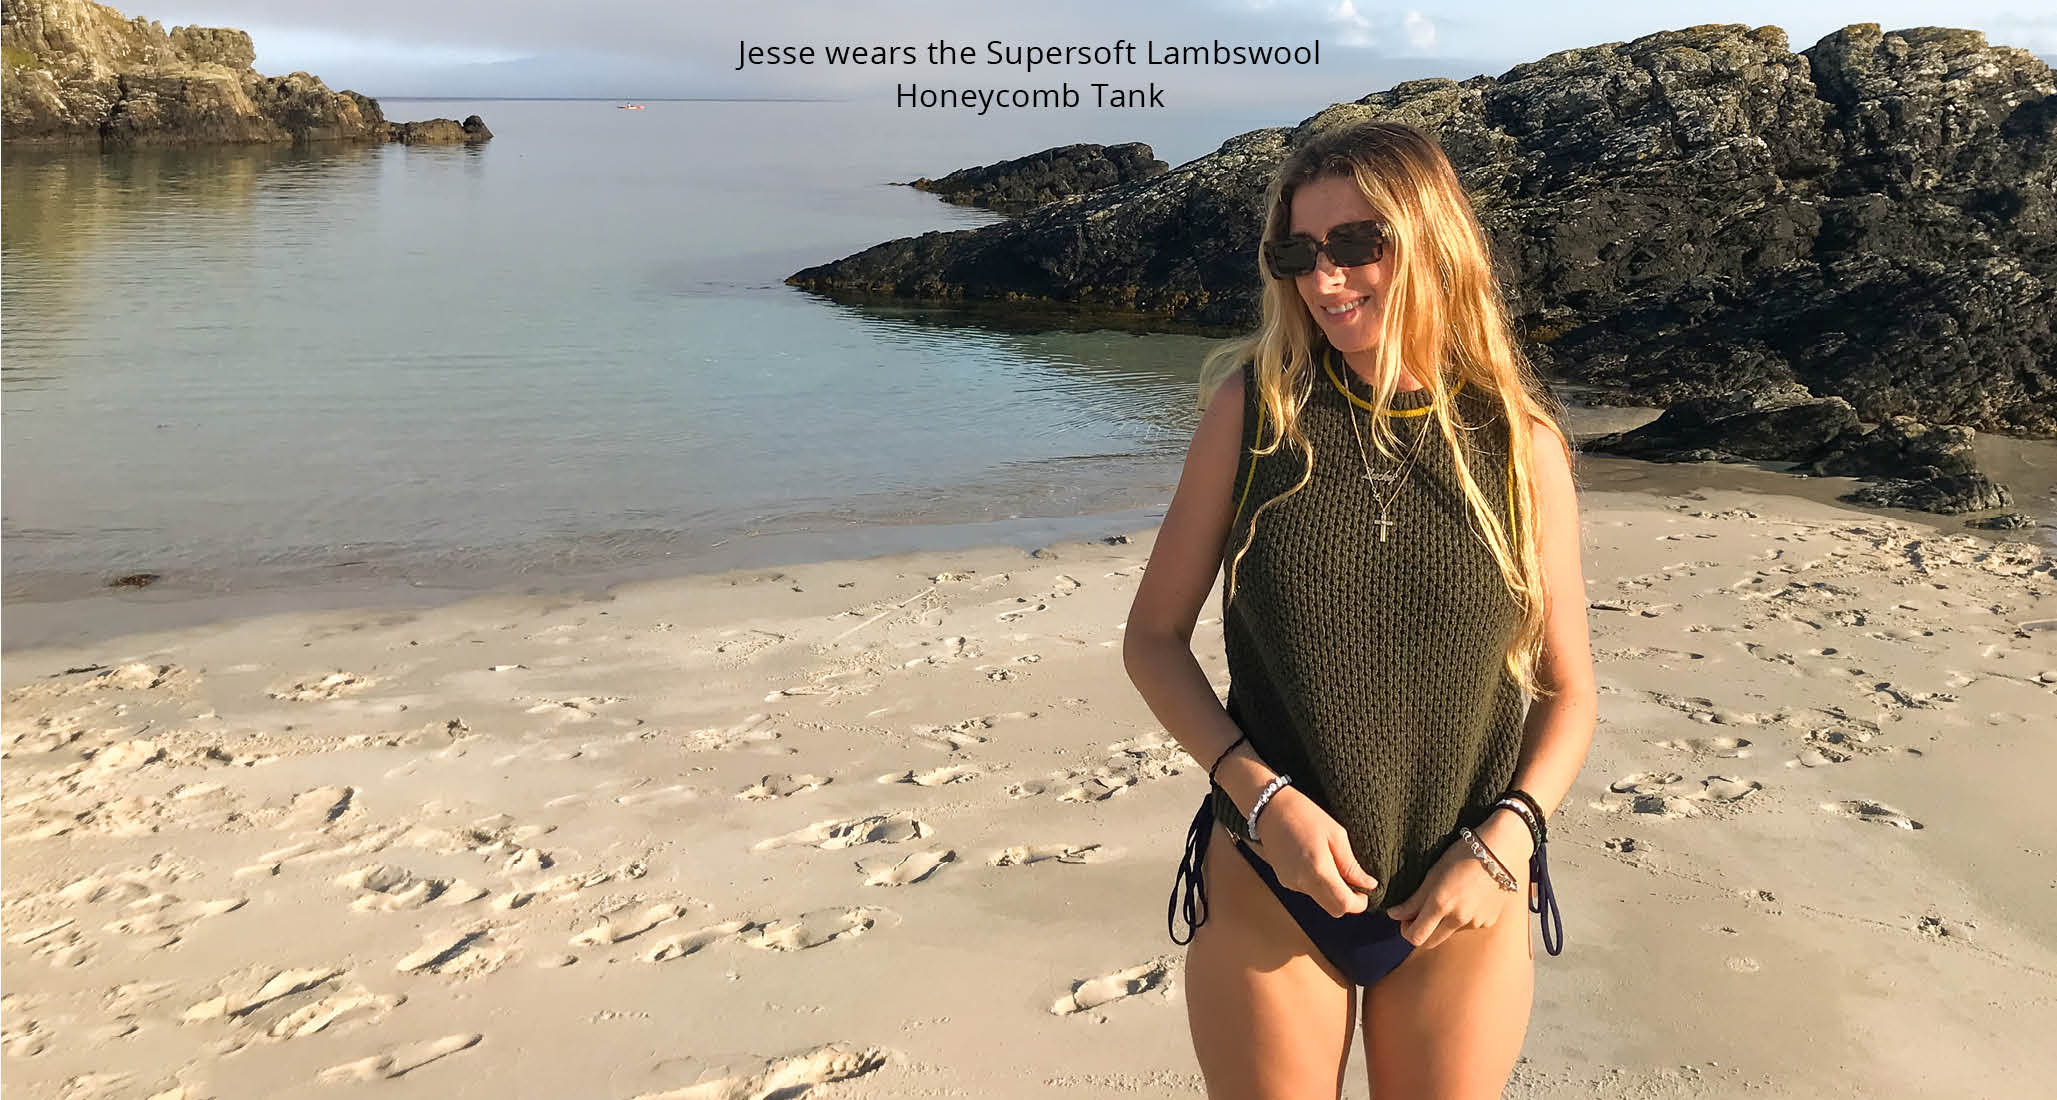 Jesse wears the Supersoft Lambswool Honeycomb Tank